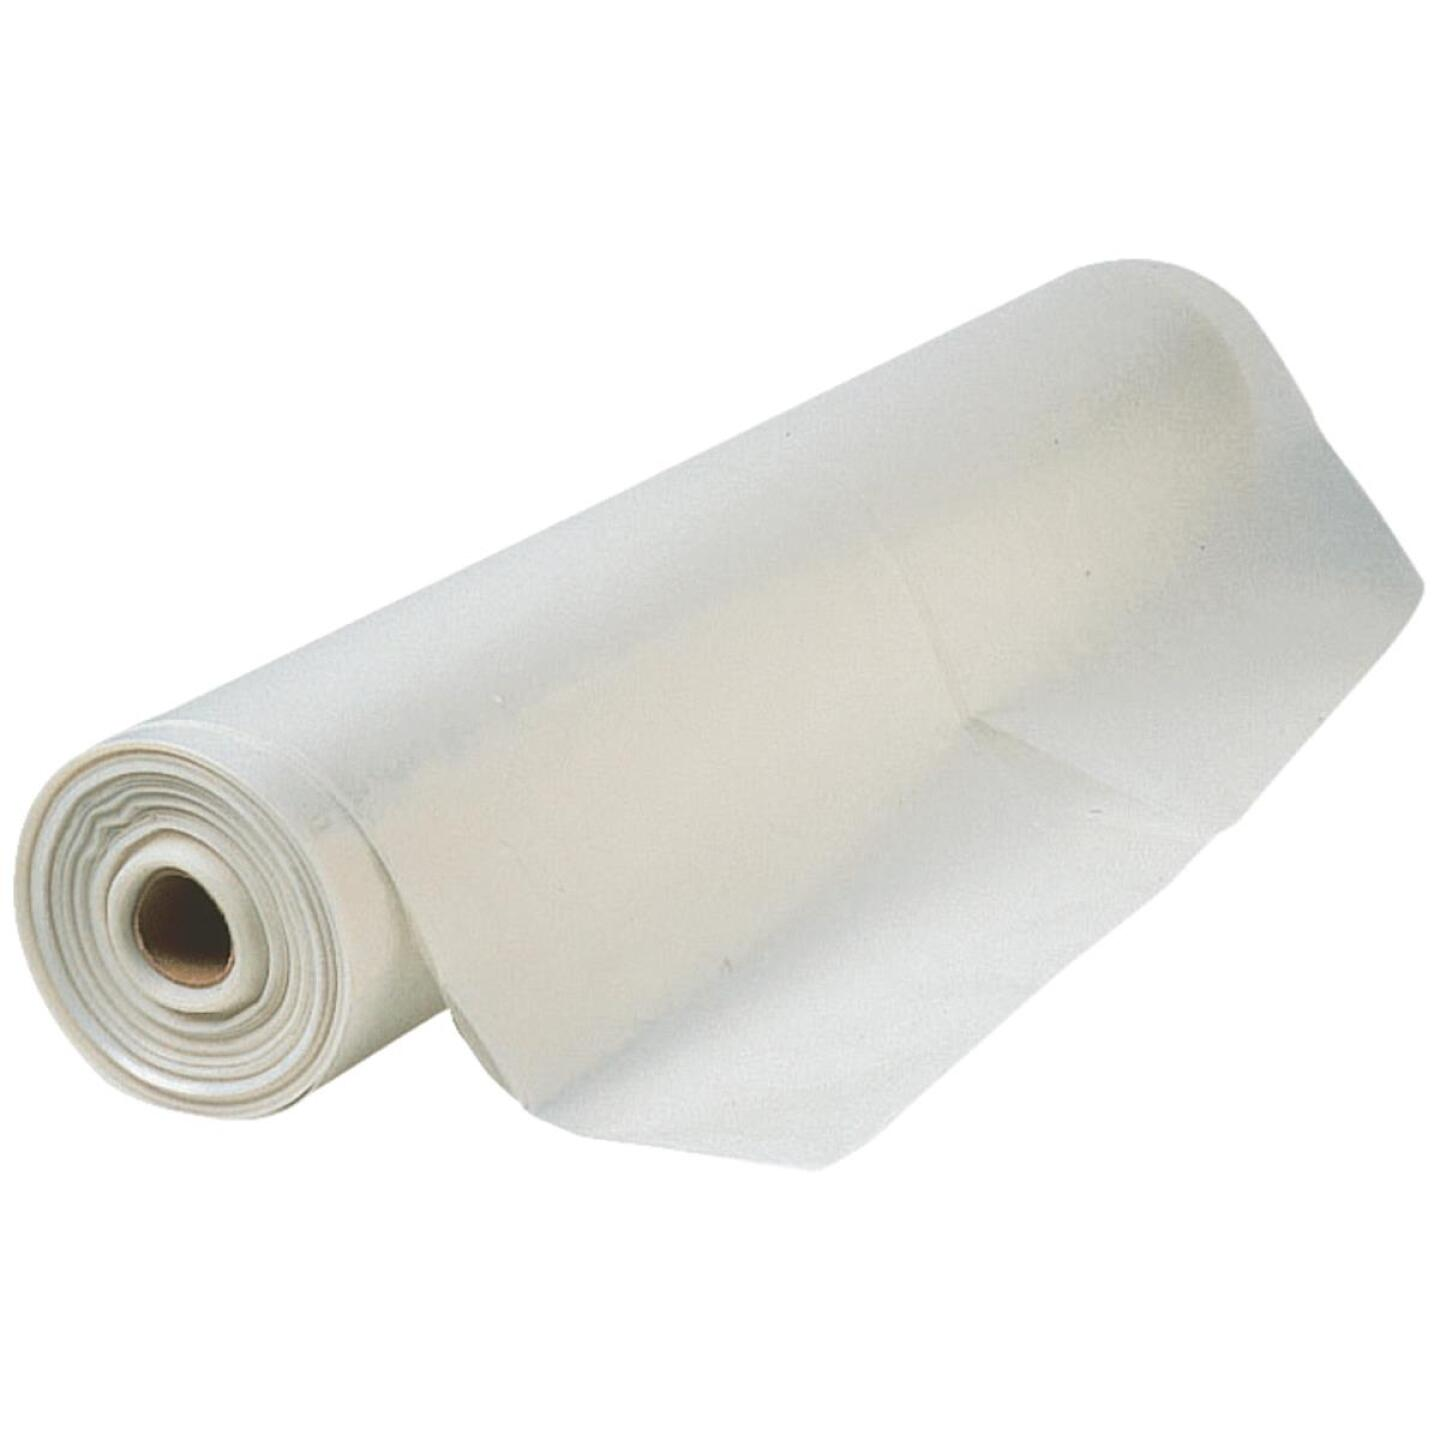 Film-Gard 8 Ft. x 100 Ft. Clear 4 Mil. Polyethylene Sheeting Image 2